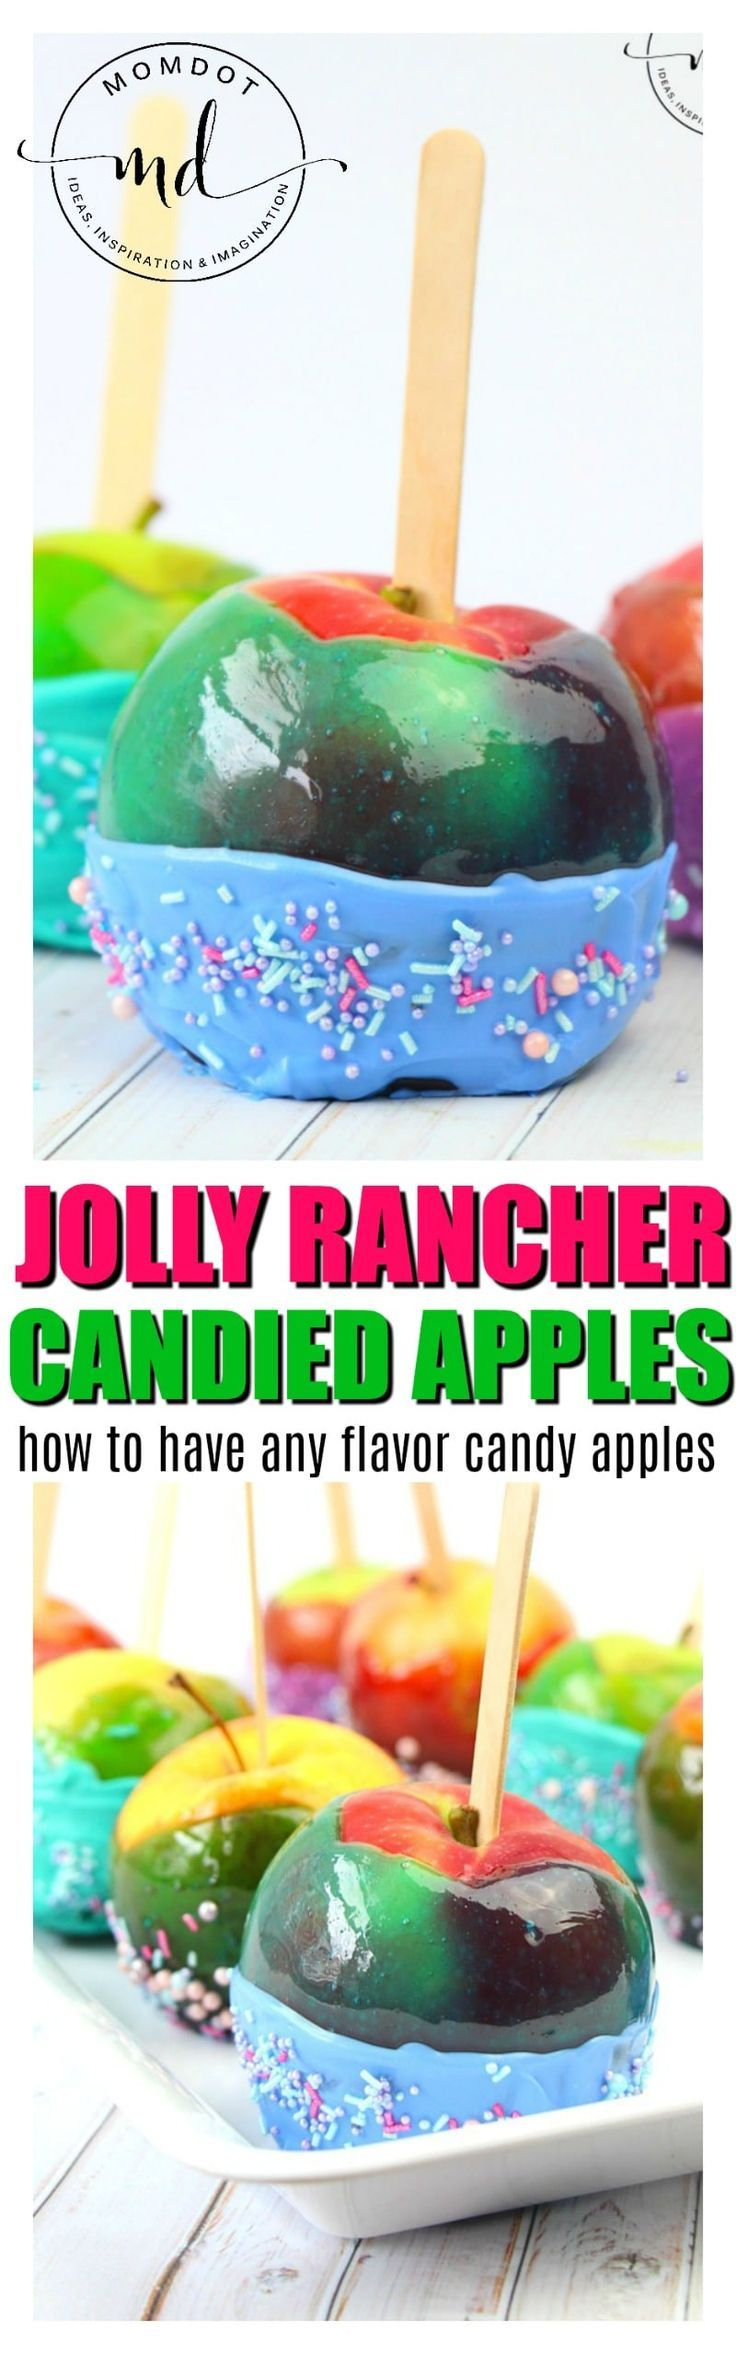 Jolly Rancher Candy Apples : How to make candied apples with jolly ranchers